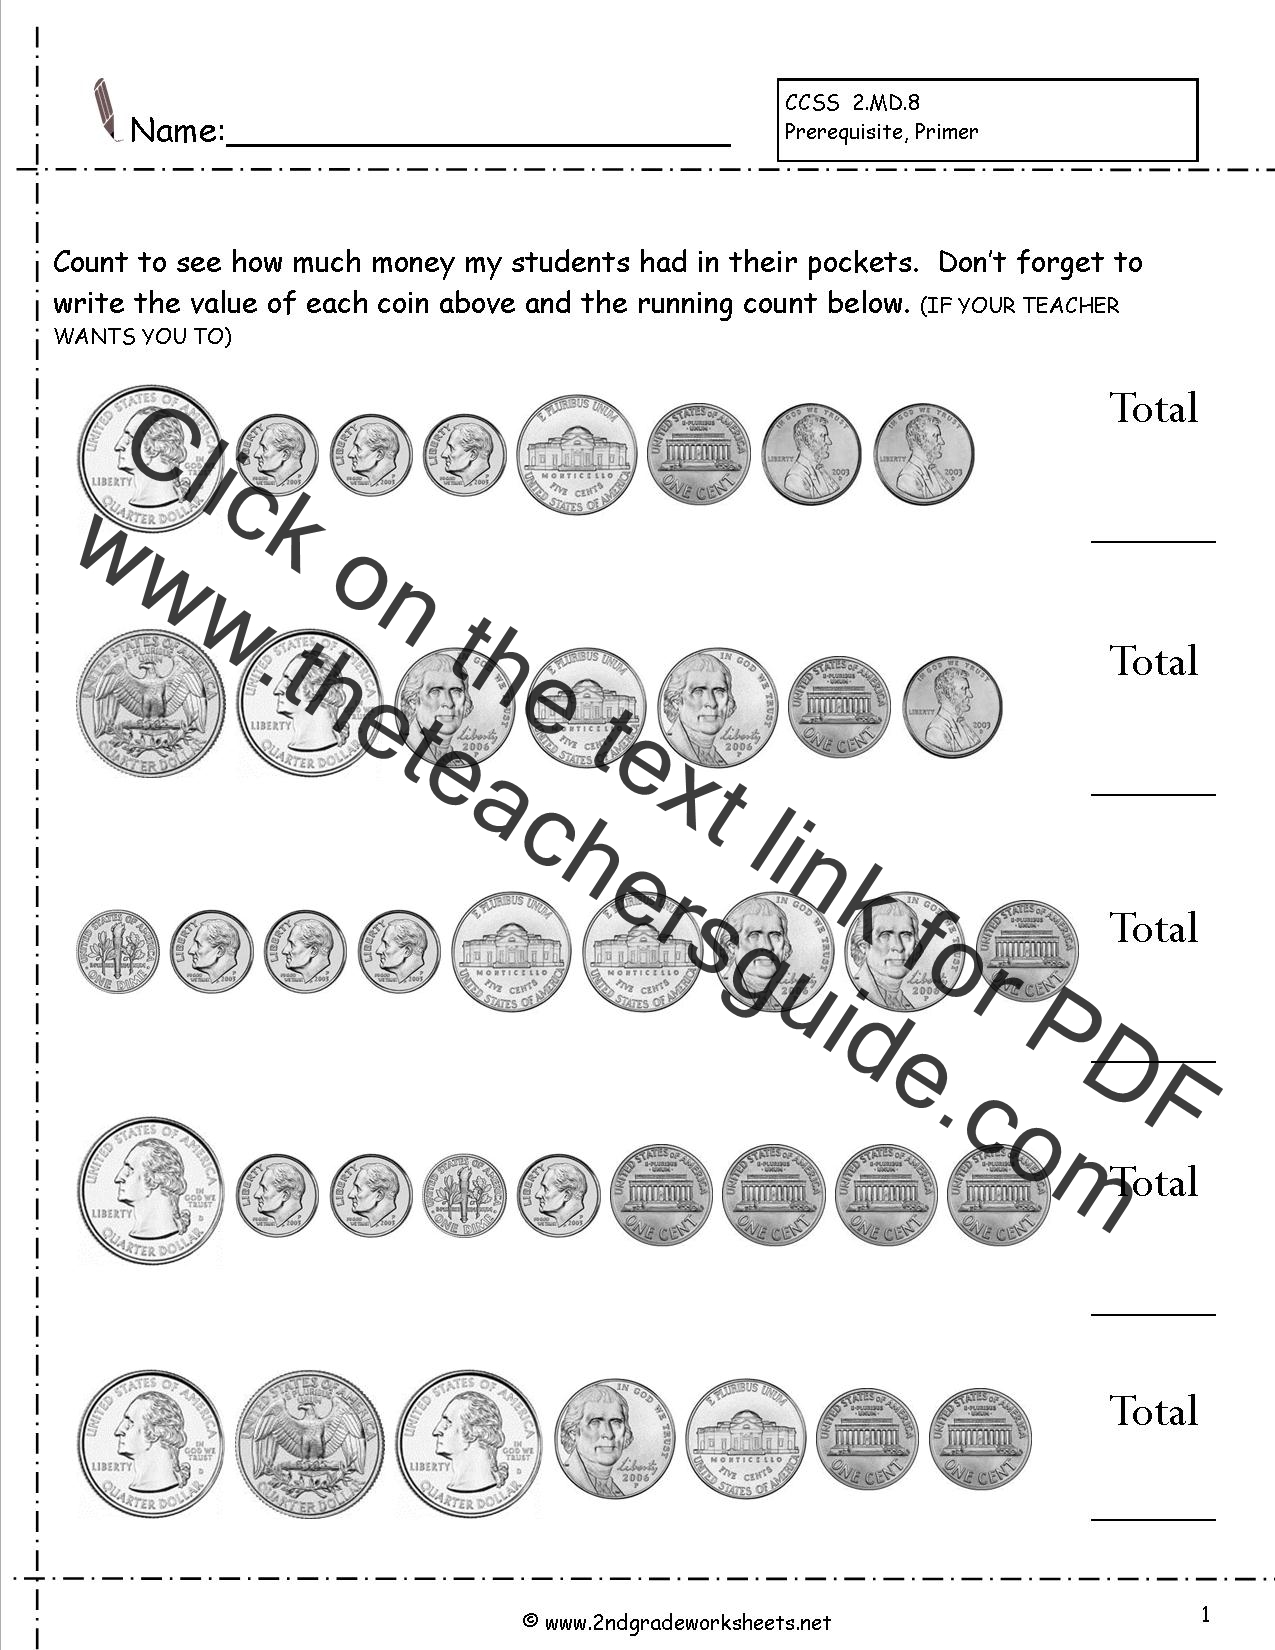 Counting Coins and Money Worksheets and Printouts – 2nd Grade Worksheet